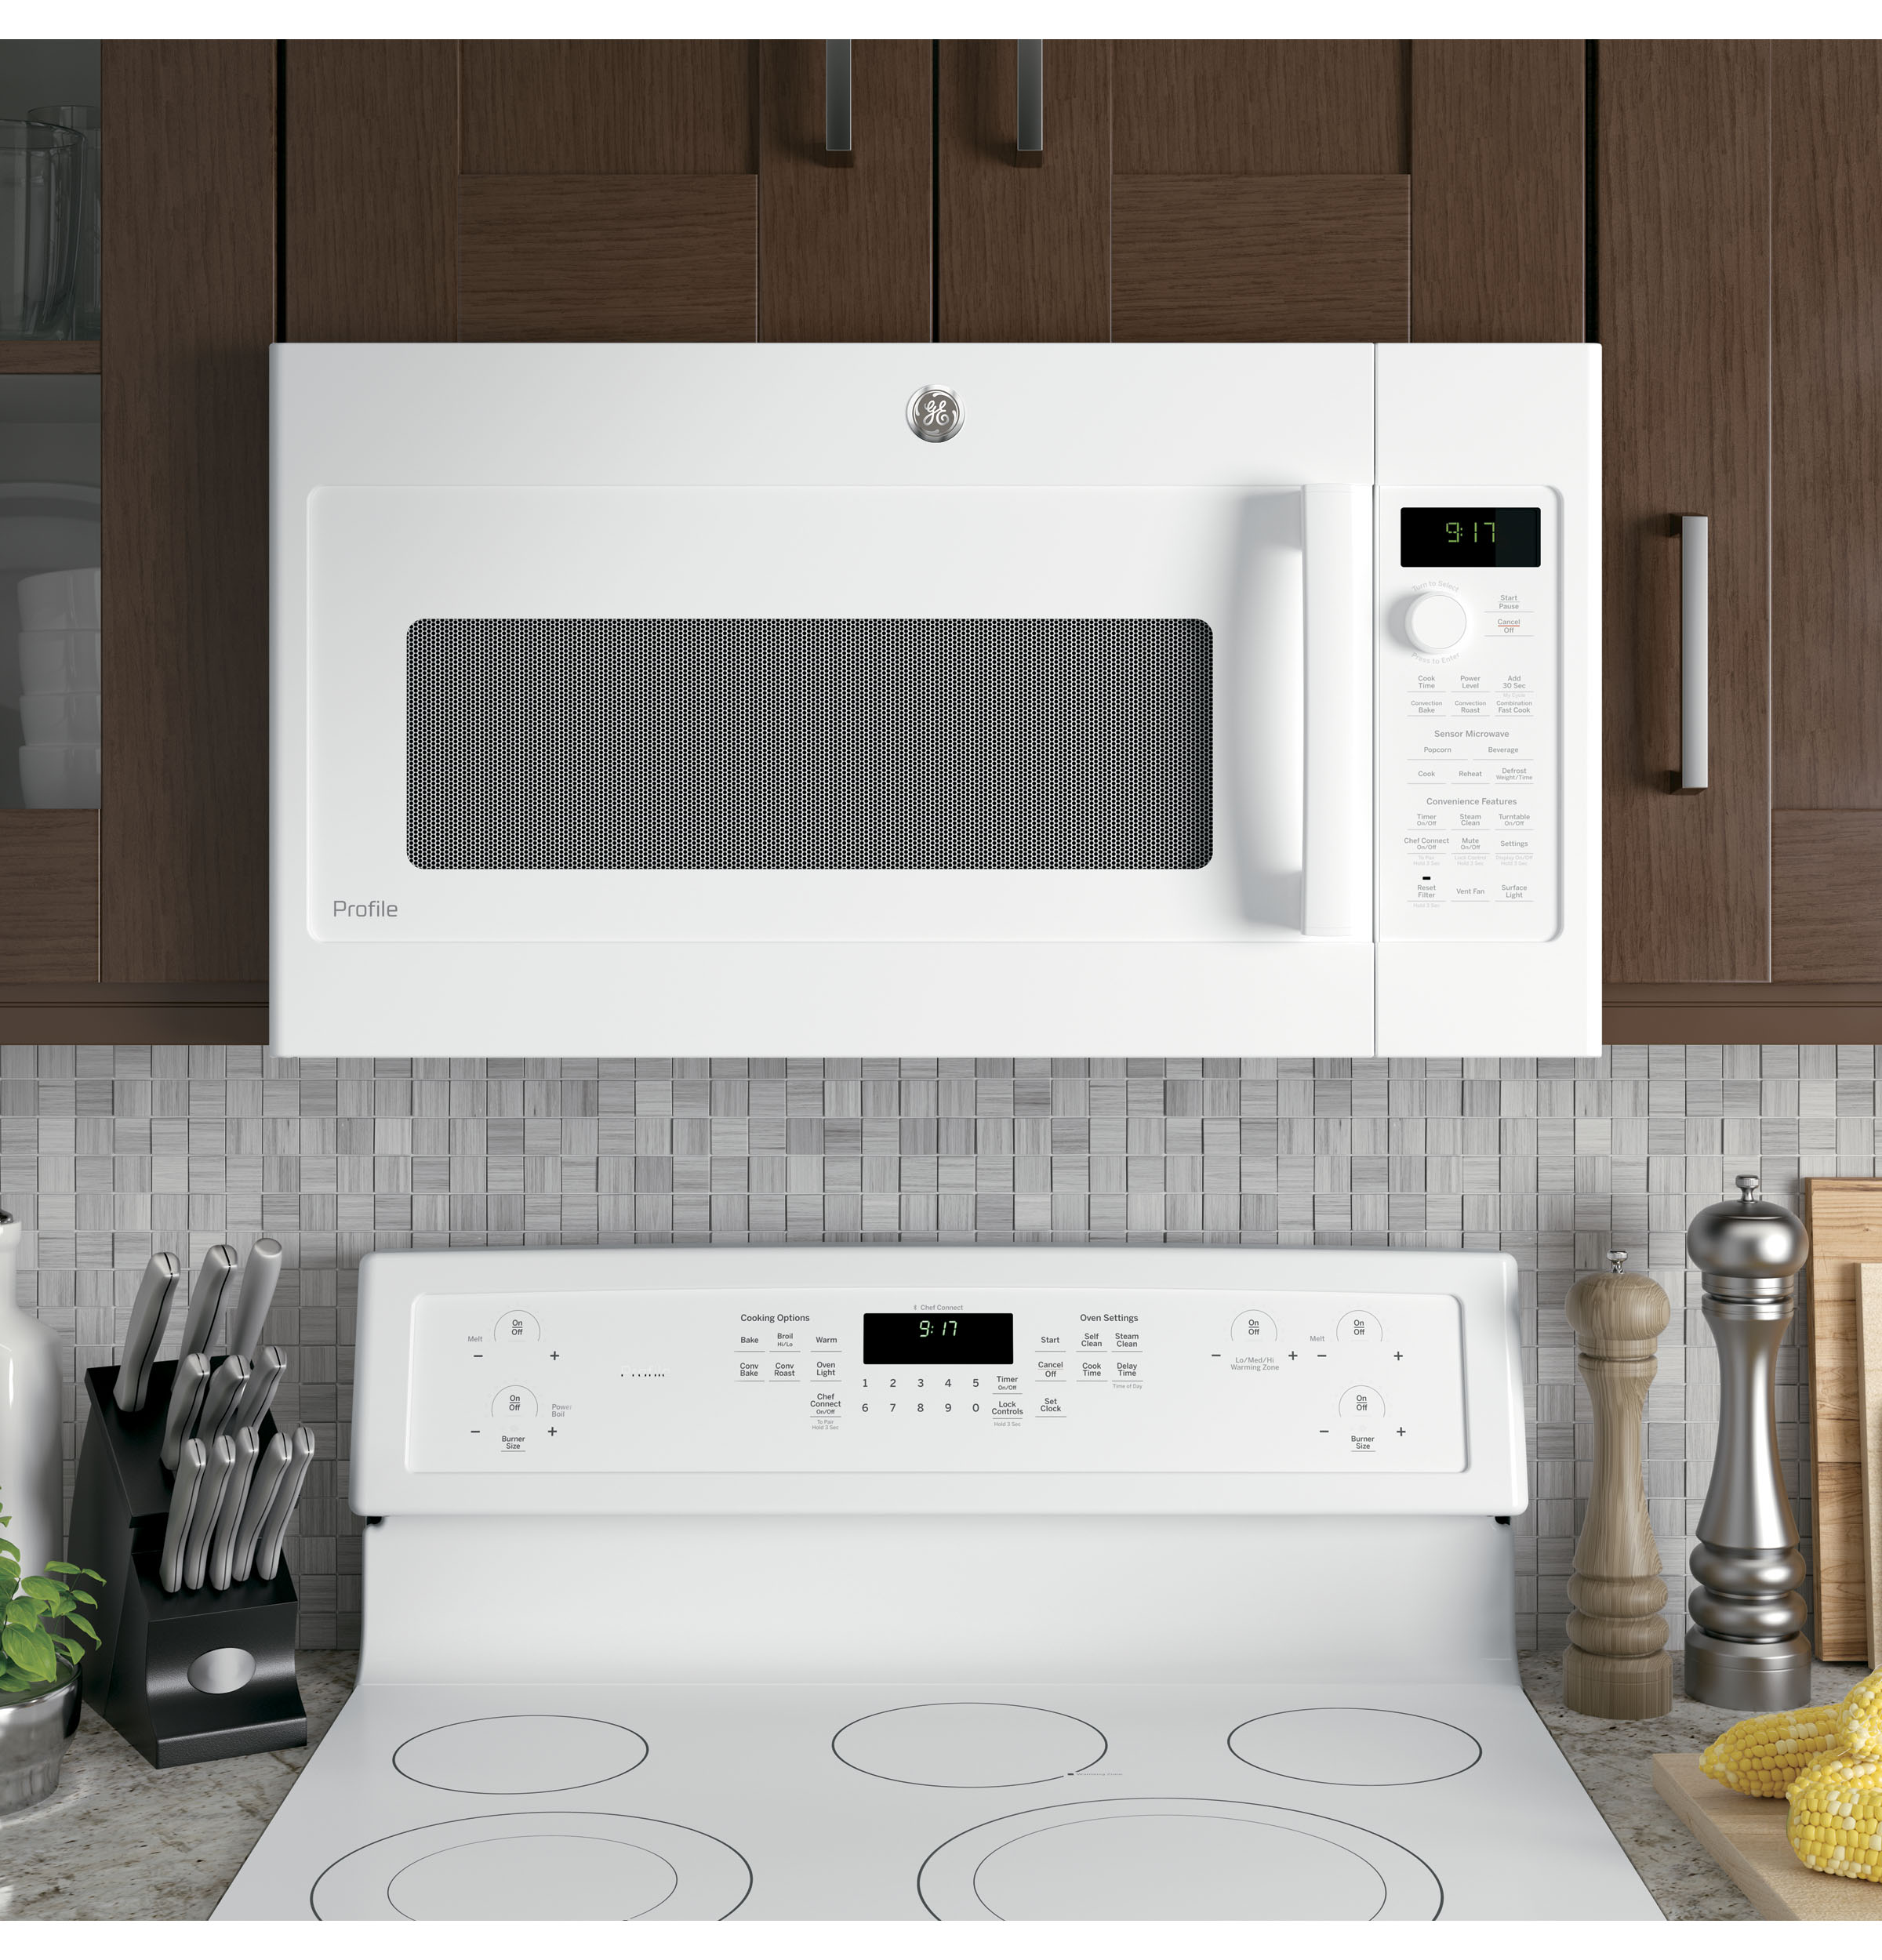 Model: PVM9179DKWW | GE Profile GE Profile™ Series 1.7 Cu. Ft. Convection Over-the-Range Microwave Oven